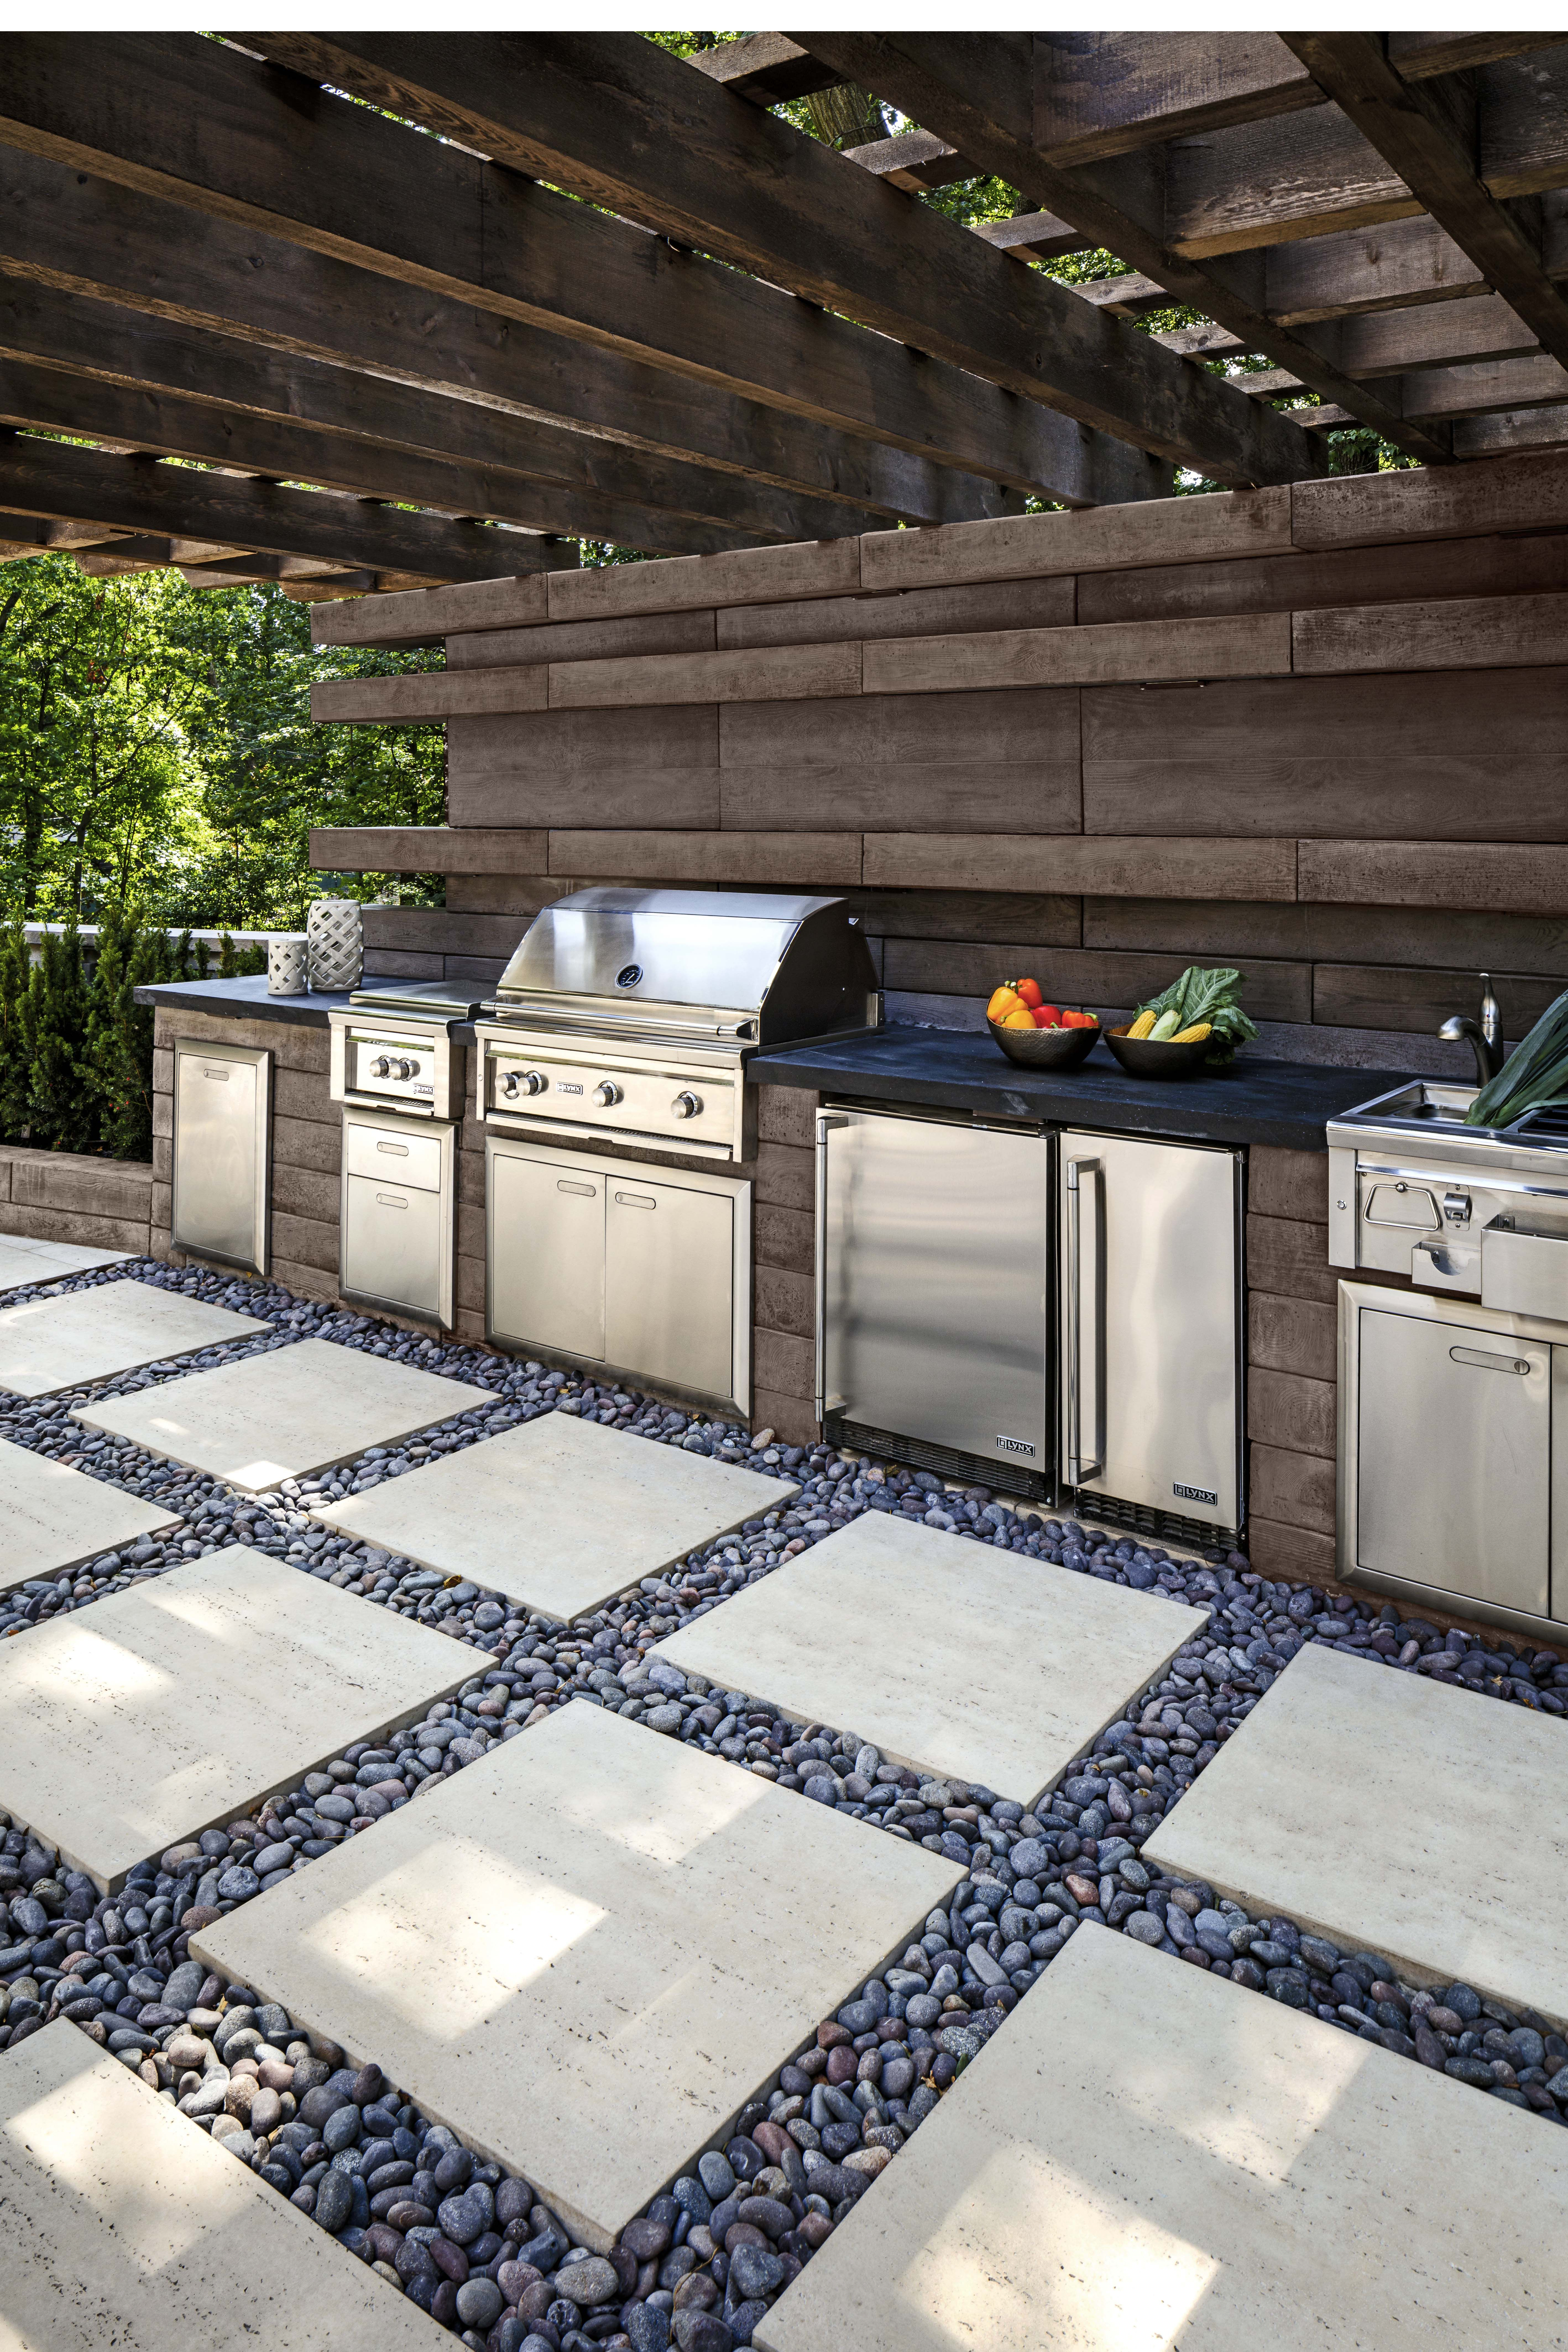 Looking For A An Outdoor Kitchen Idea For This Landscape Project The Borealis Wall Was Used F Outdoor Kitchen Design Backyard Grill Ideas Diy Outdoor Kitchen